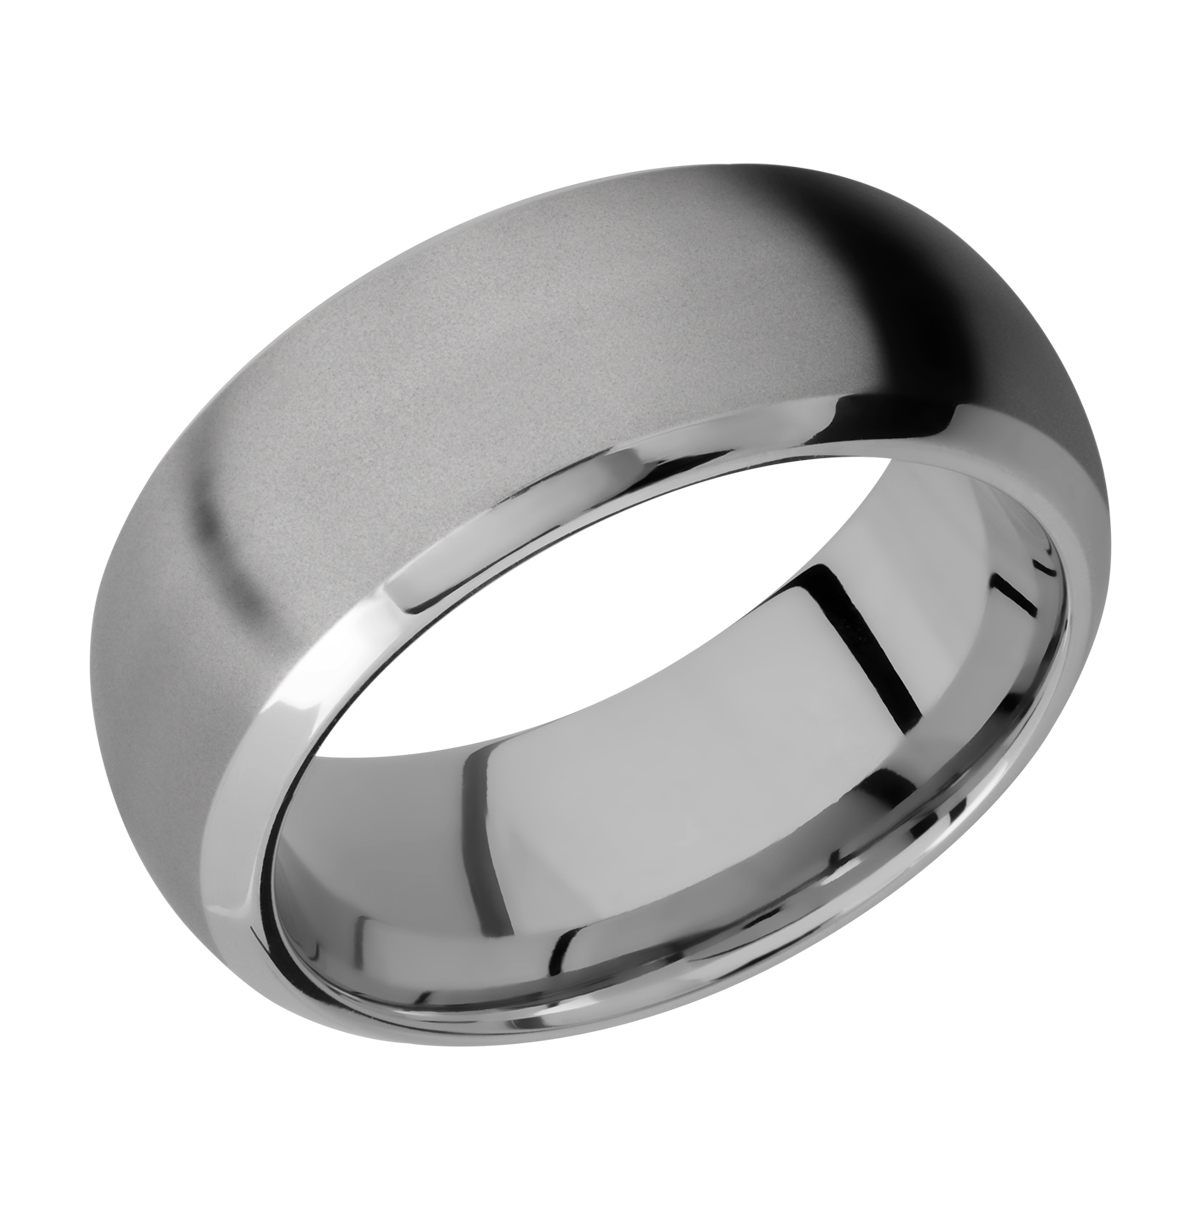 Lashbrook 9DB Titanium Wedding Ring or Band